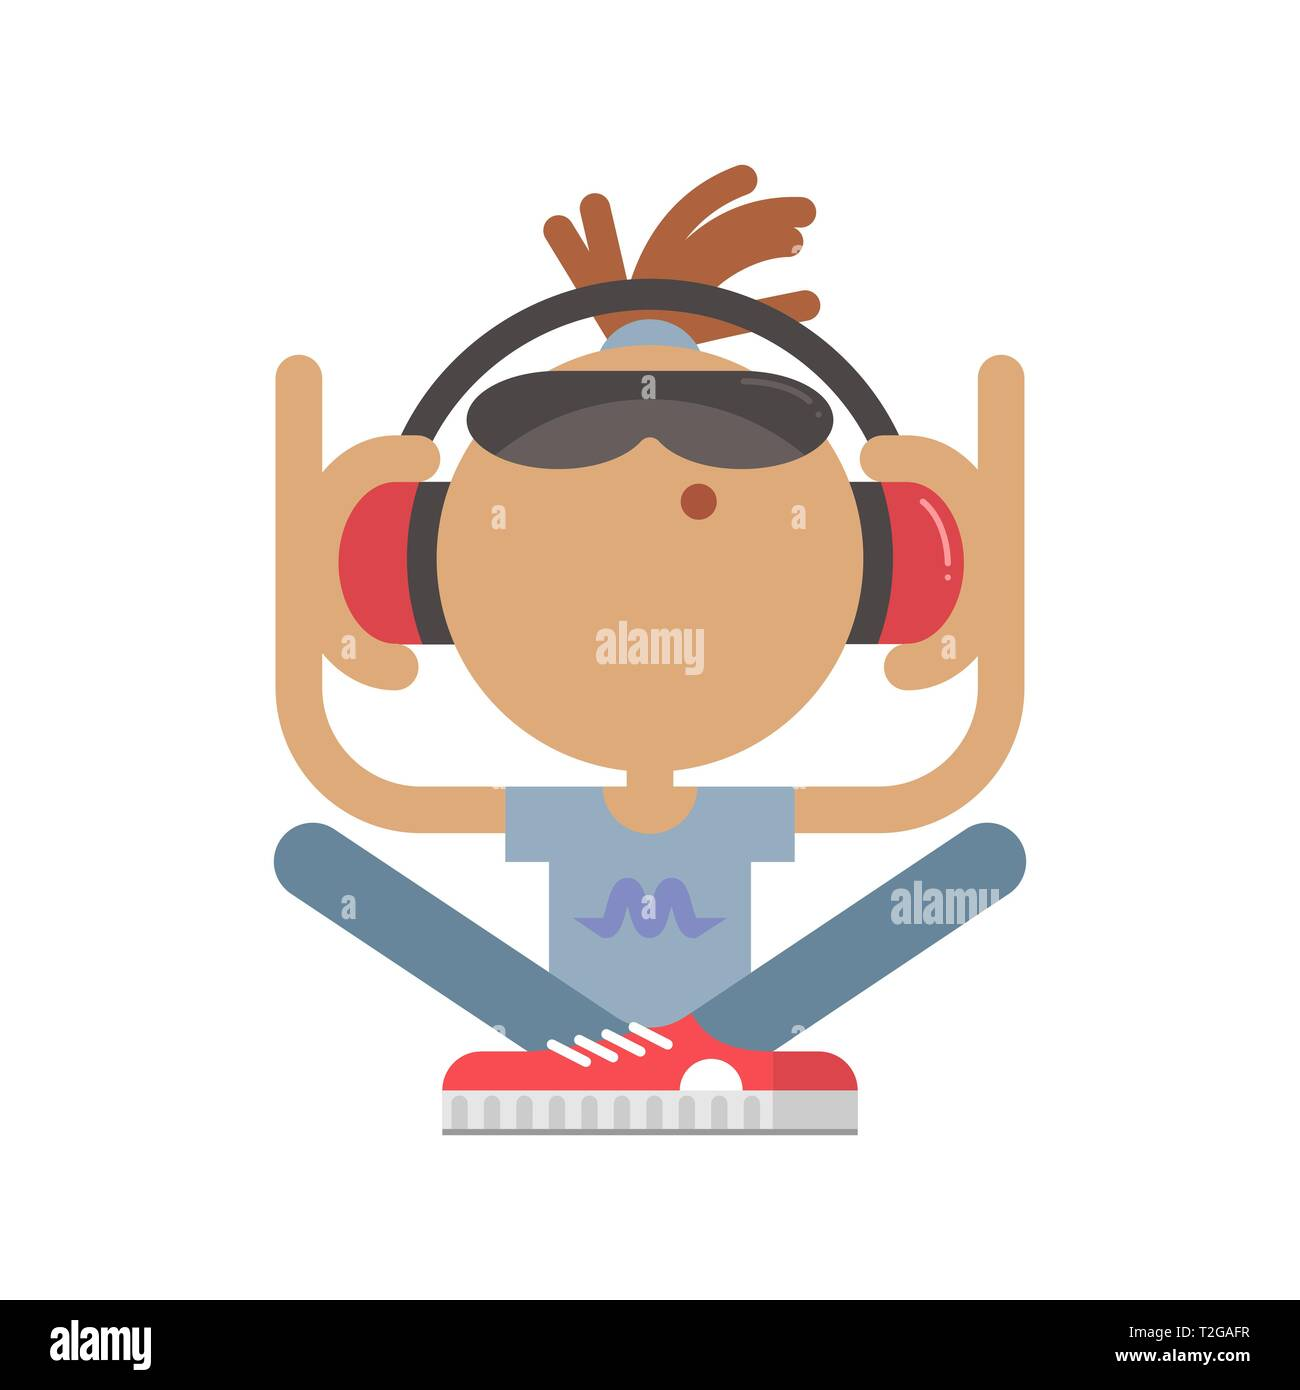 The character in flat style shows a music-lover that is sitting with crossed legs and listening to music. He is wearing sunglasses and headphones. - Stock Vector